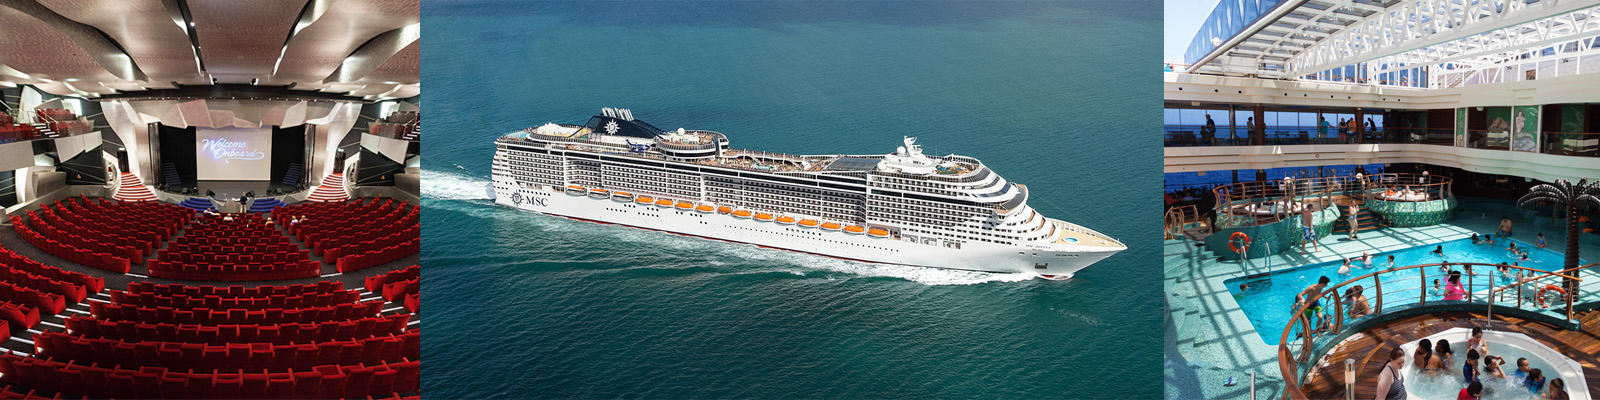 MSC Divina Cruise Ship Review Photos Departure Ports On Cruise - How do cruise ships work